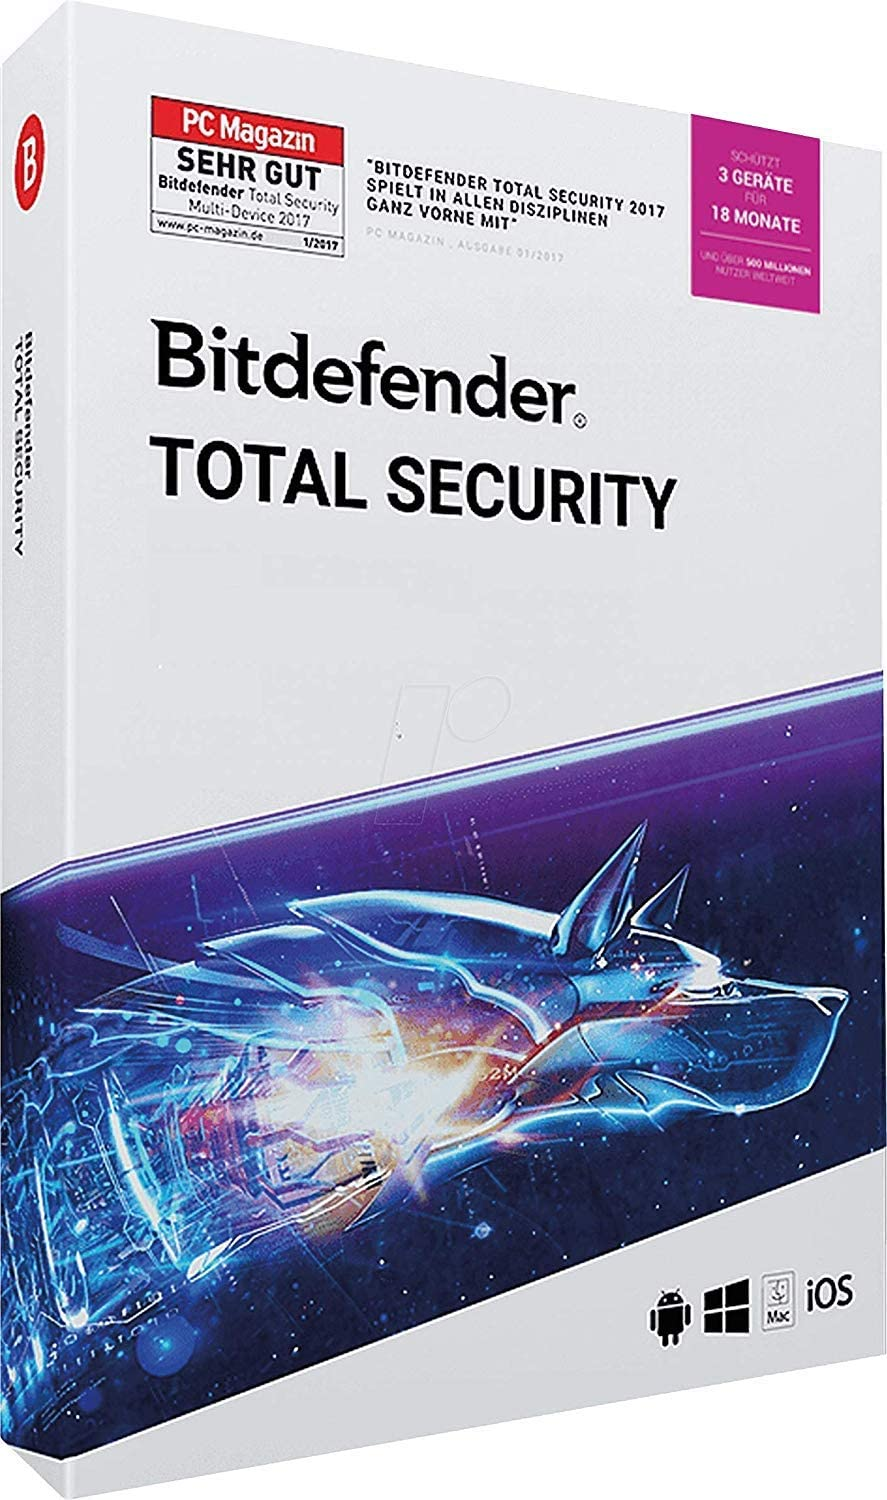 Bitdefender Total Security 2020 25.0.3.14 Crack With Activation Code 2021